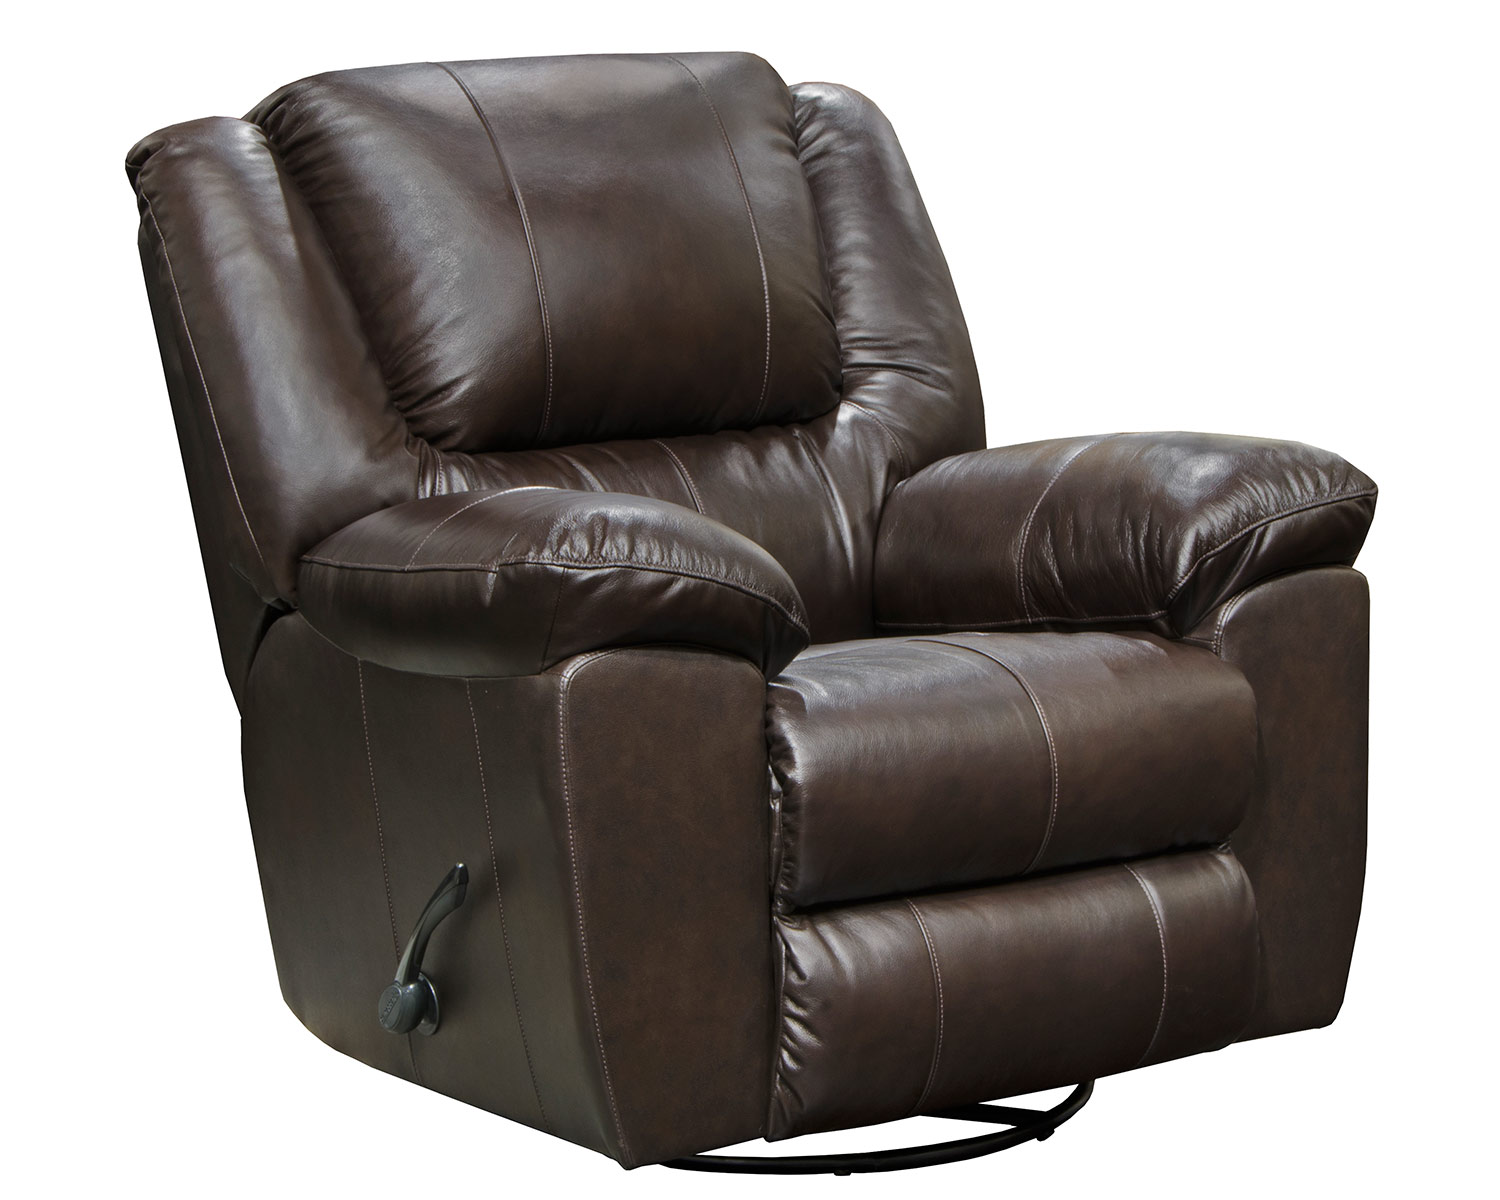 CatNapper Transformer II Leather Swivel Glider Recliner Chair - Chocolate